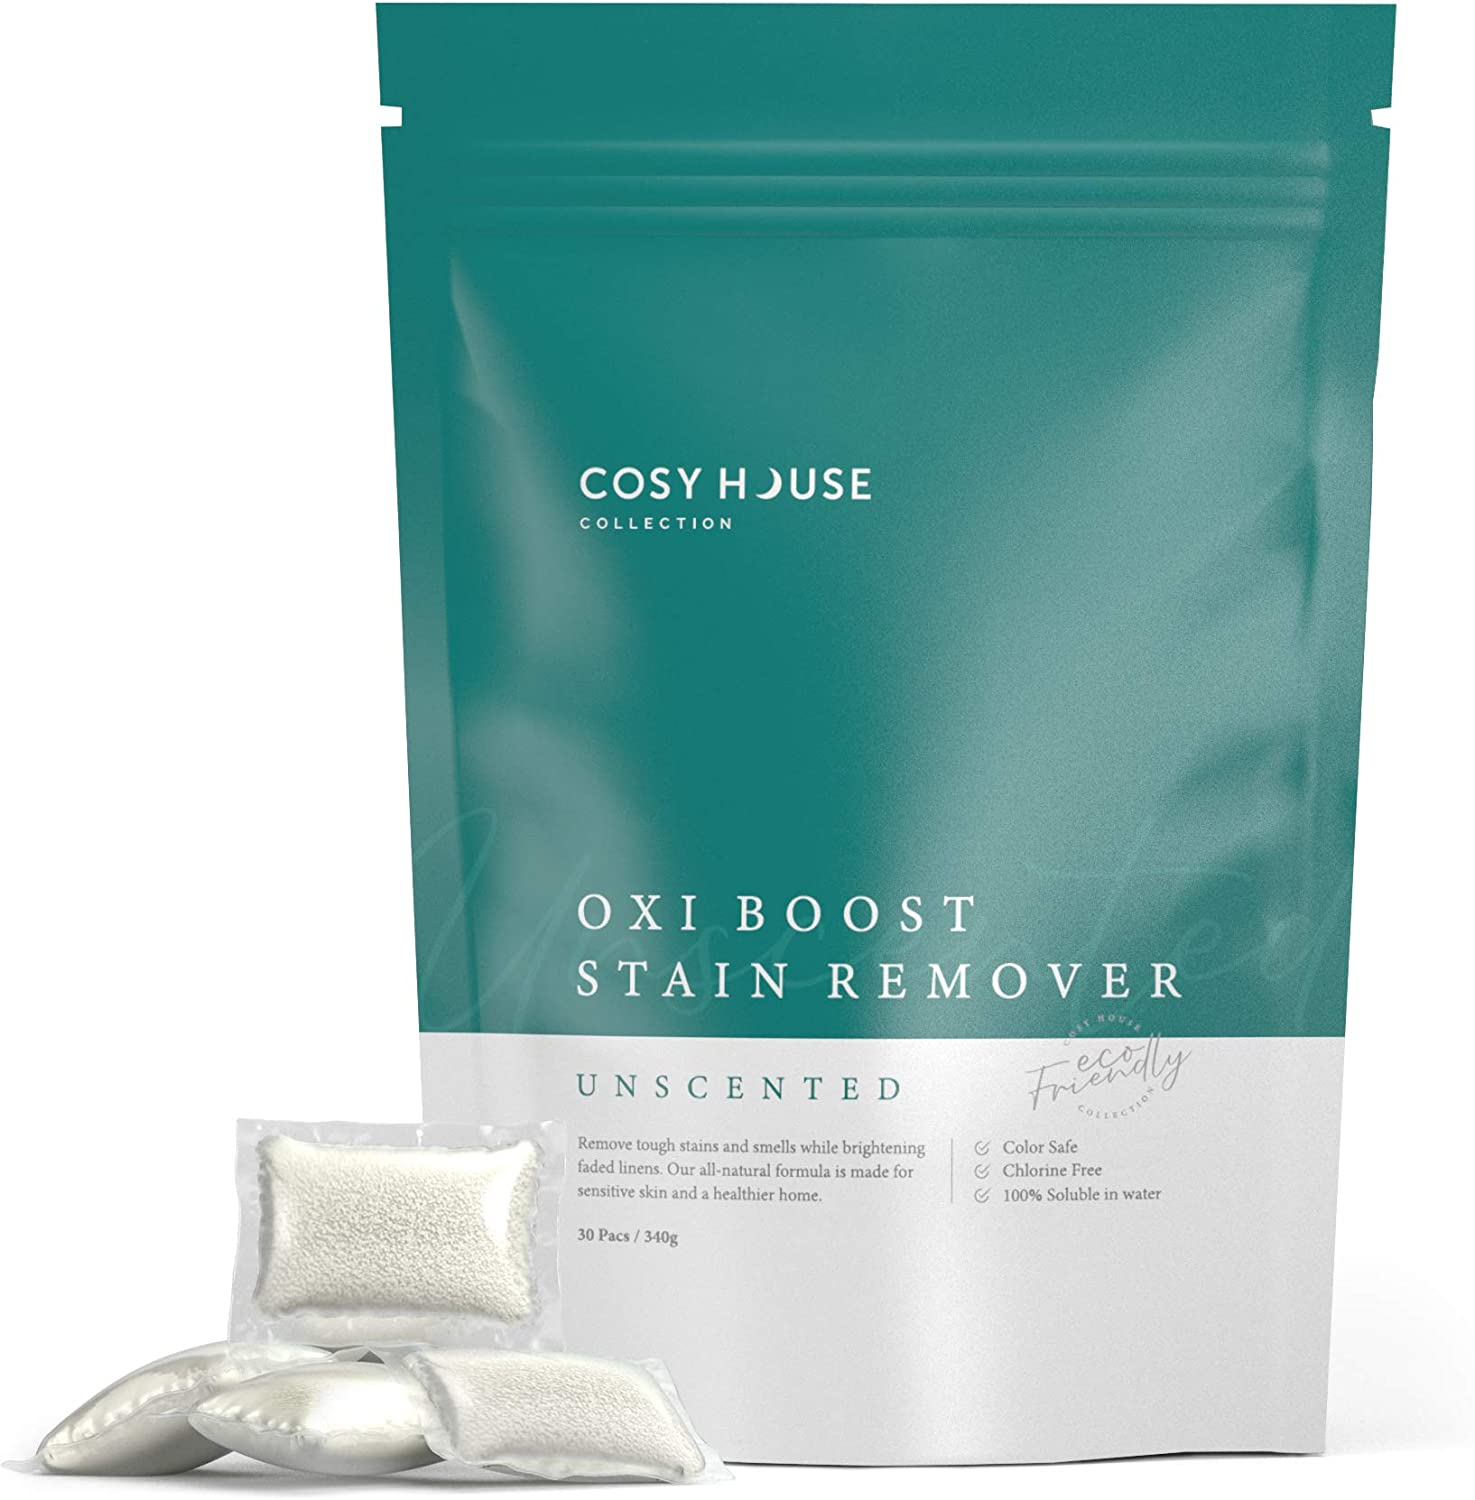 Cosy House Collection Oxi Boost Laundry Pacs Powerful Stain Remover - Unscented - Natural Hypoallergenic Chlorine-Free & Color Safe Formula - For All Machine Types